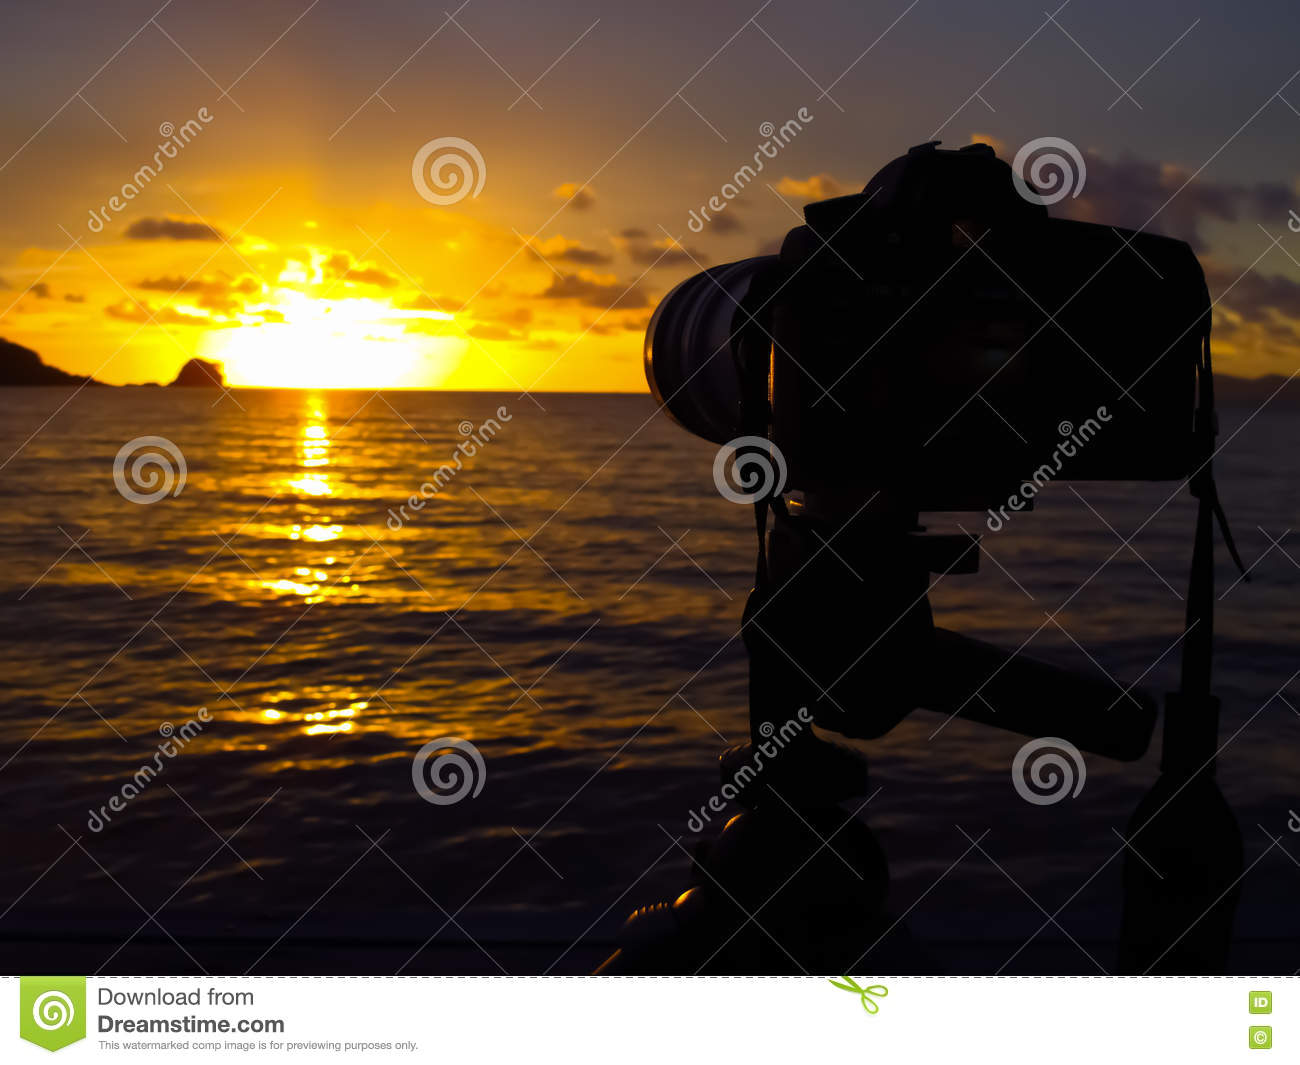 Waiting for sunset